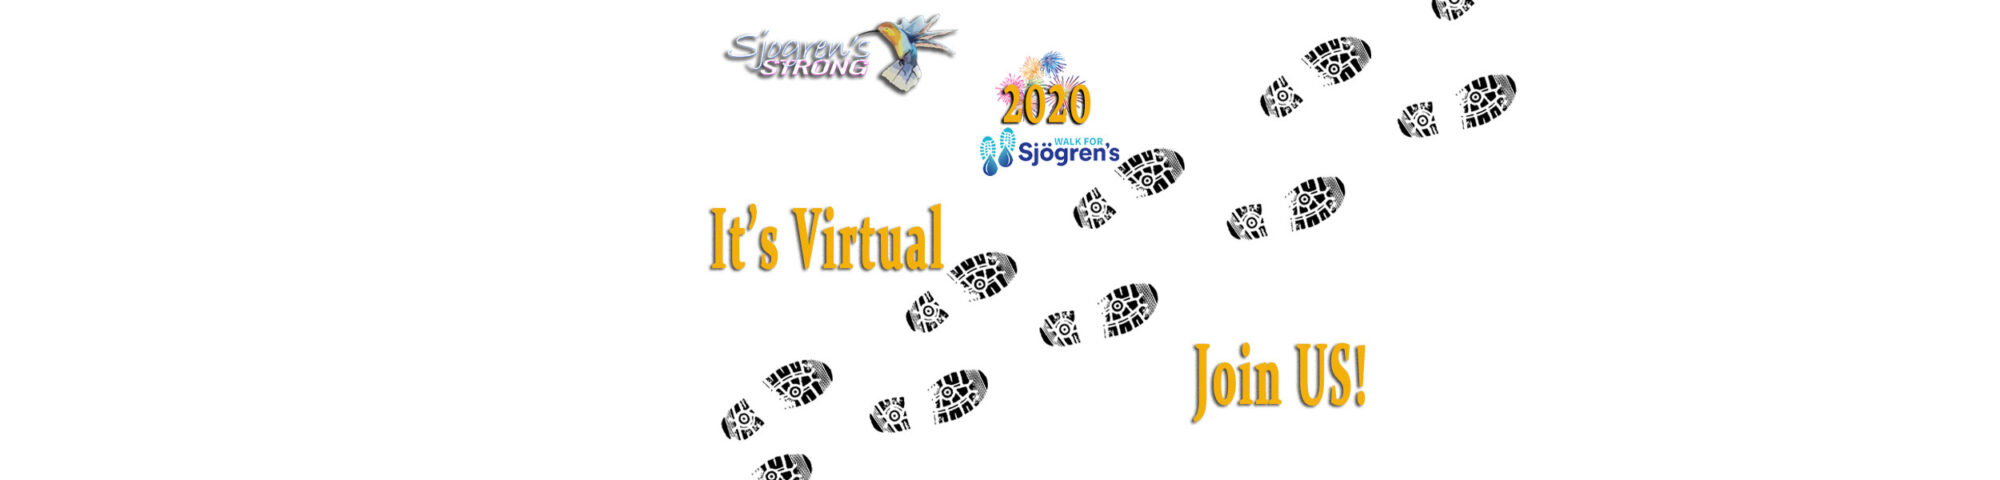 EP 85 2020 LA Virtual Walk for Sjogrens Files